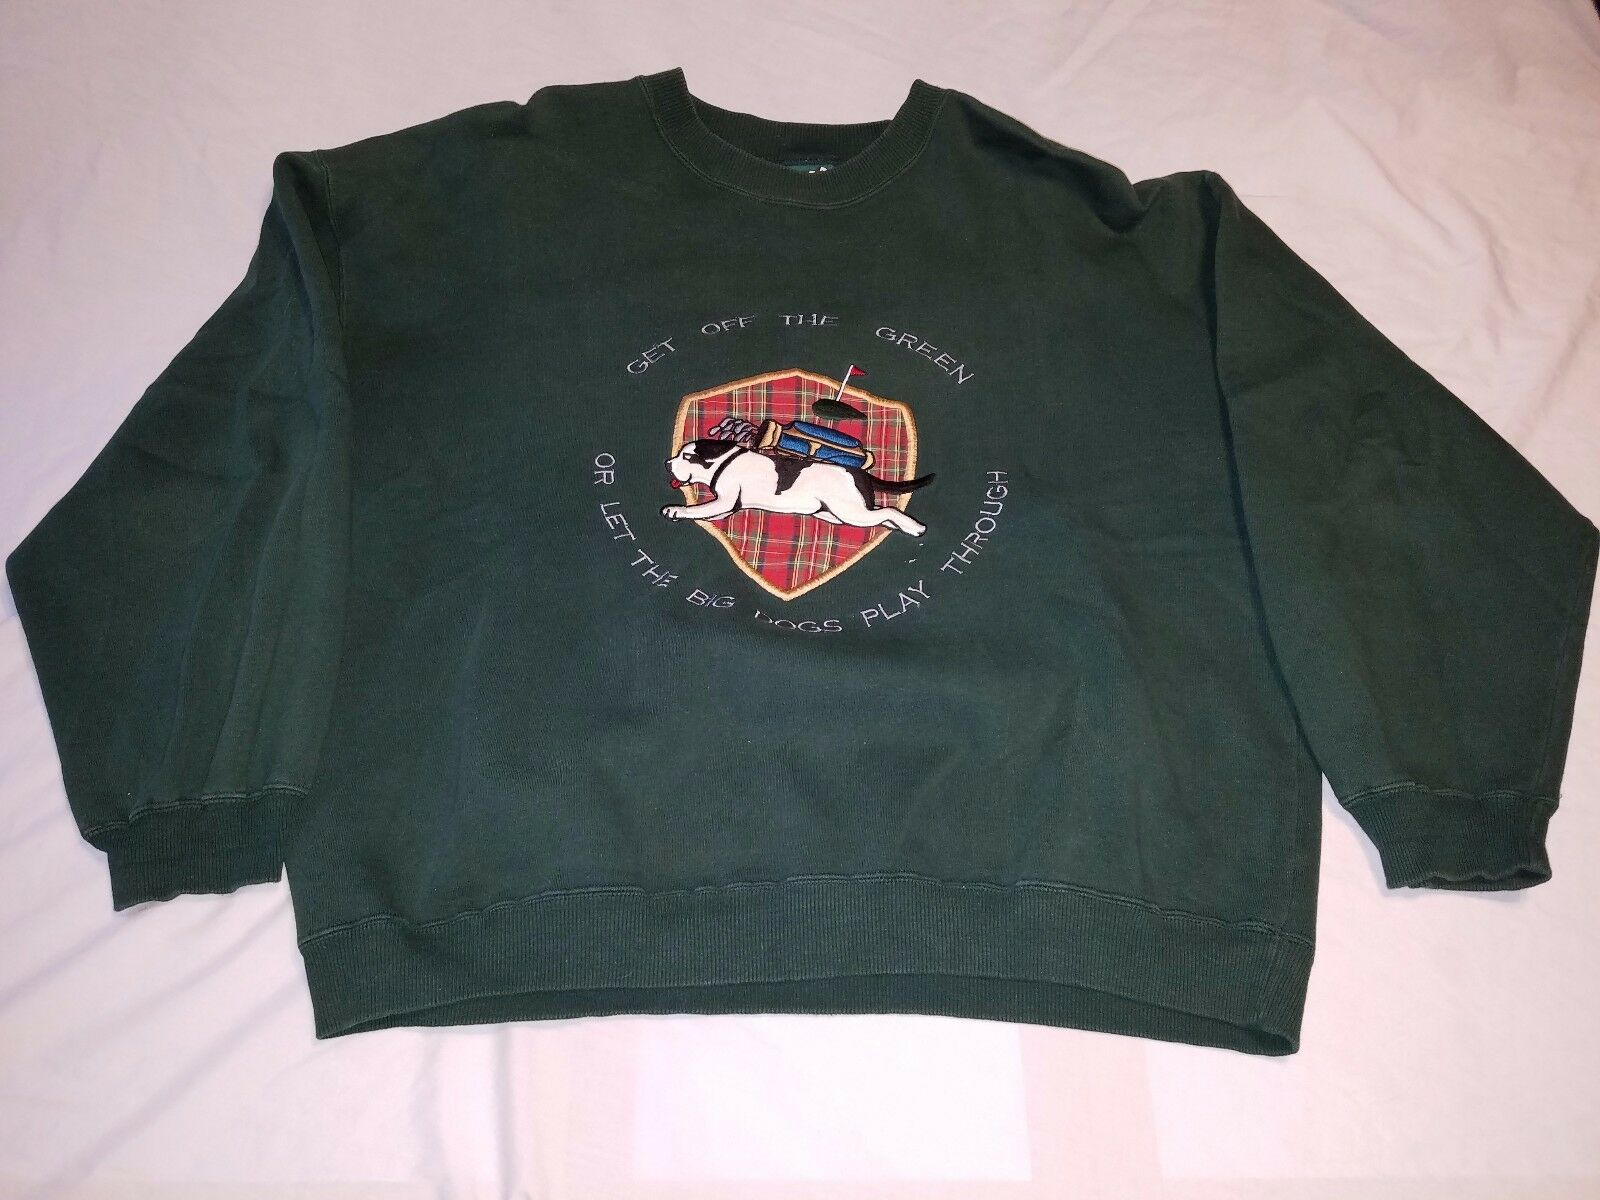 Vintage Big Dogs Get Off The Green Let Big Dogs Play Men's Sweatshirt Size M